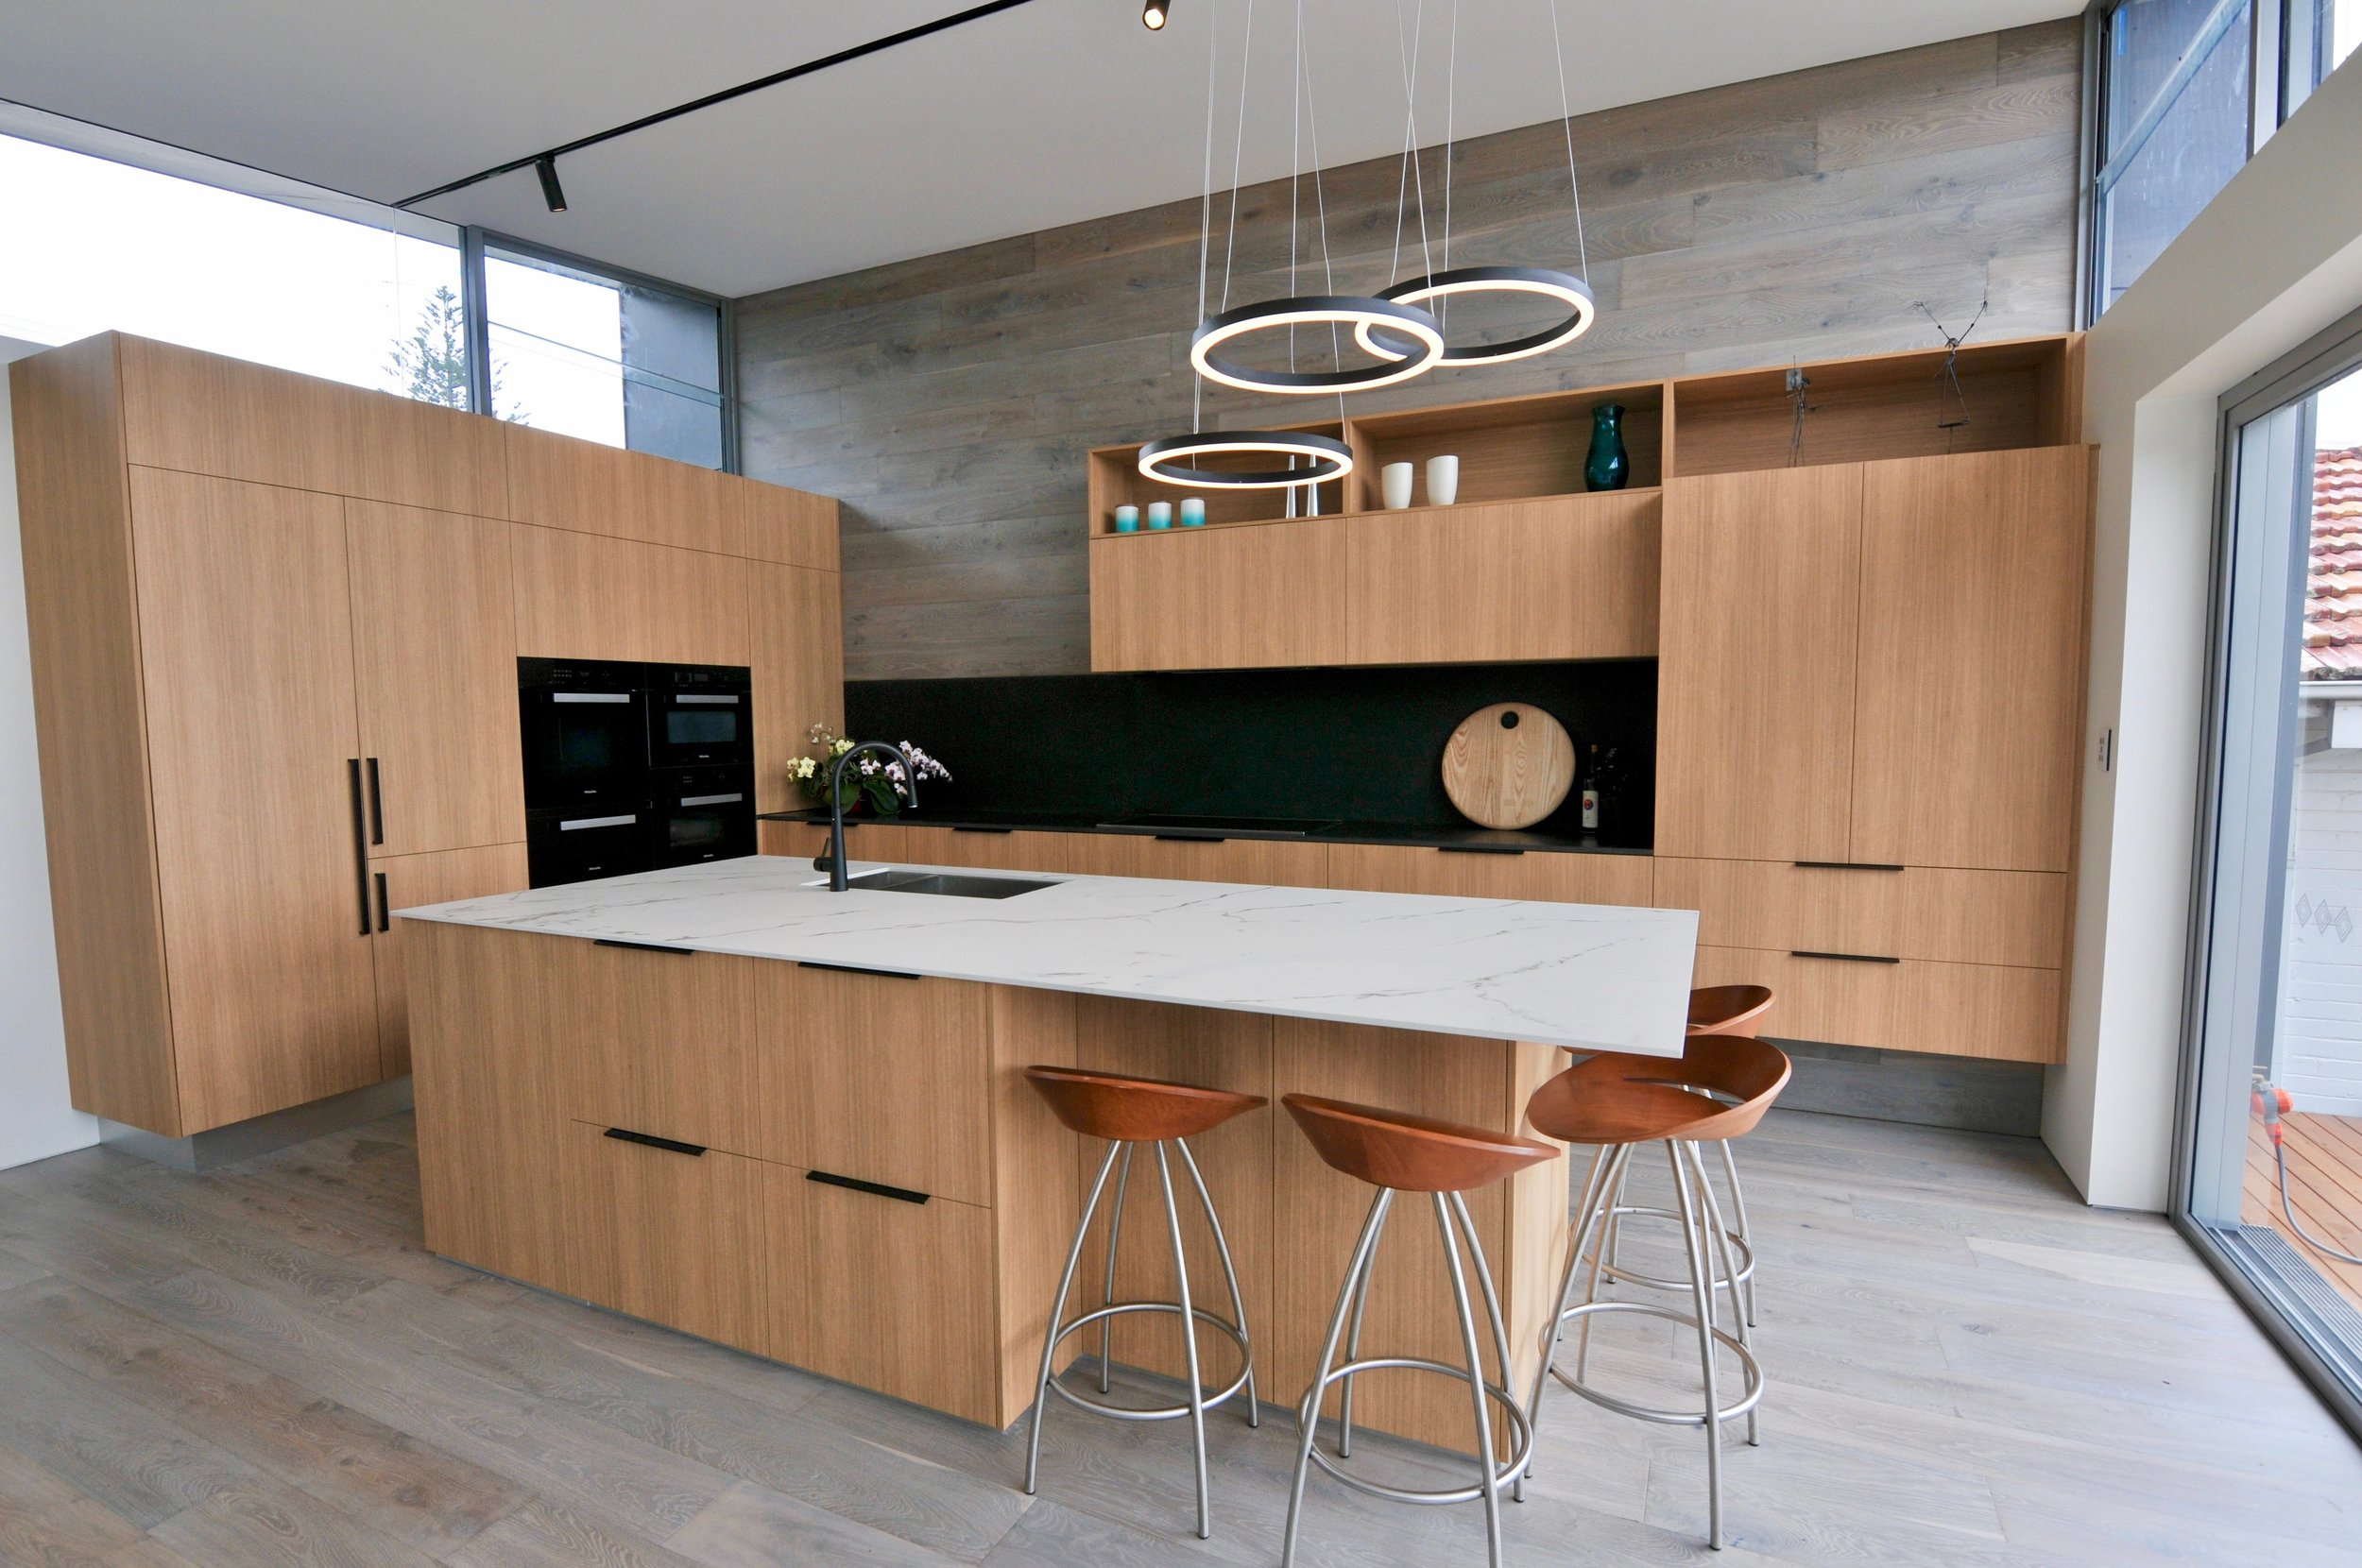 7-kitchen-.jpg